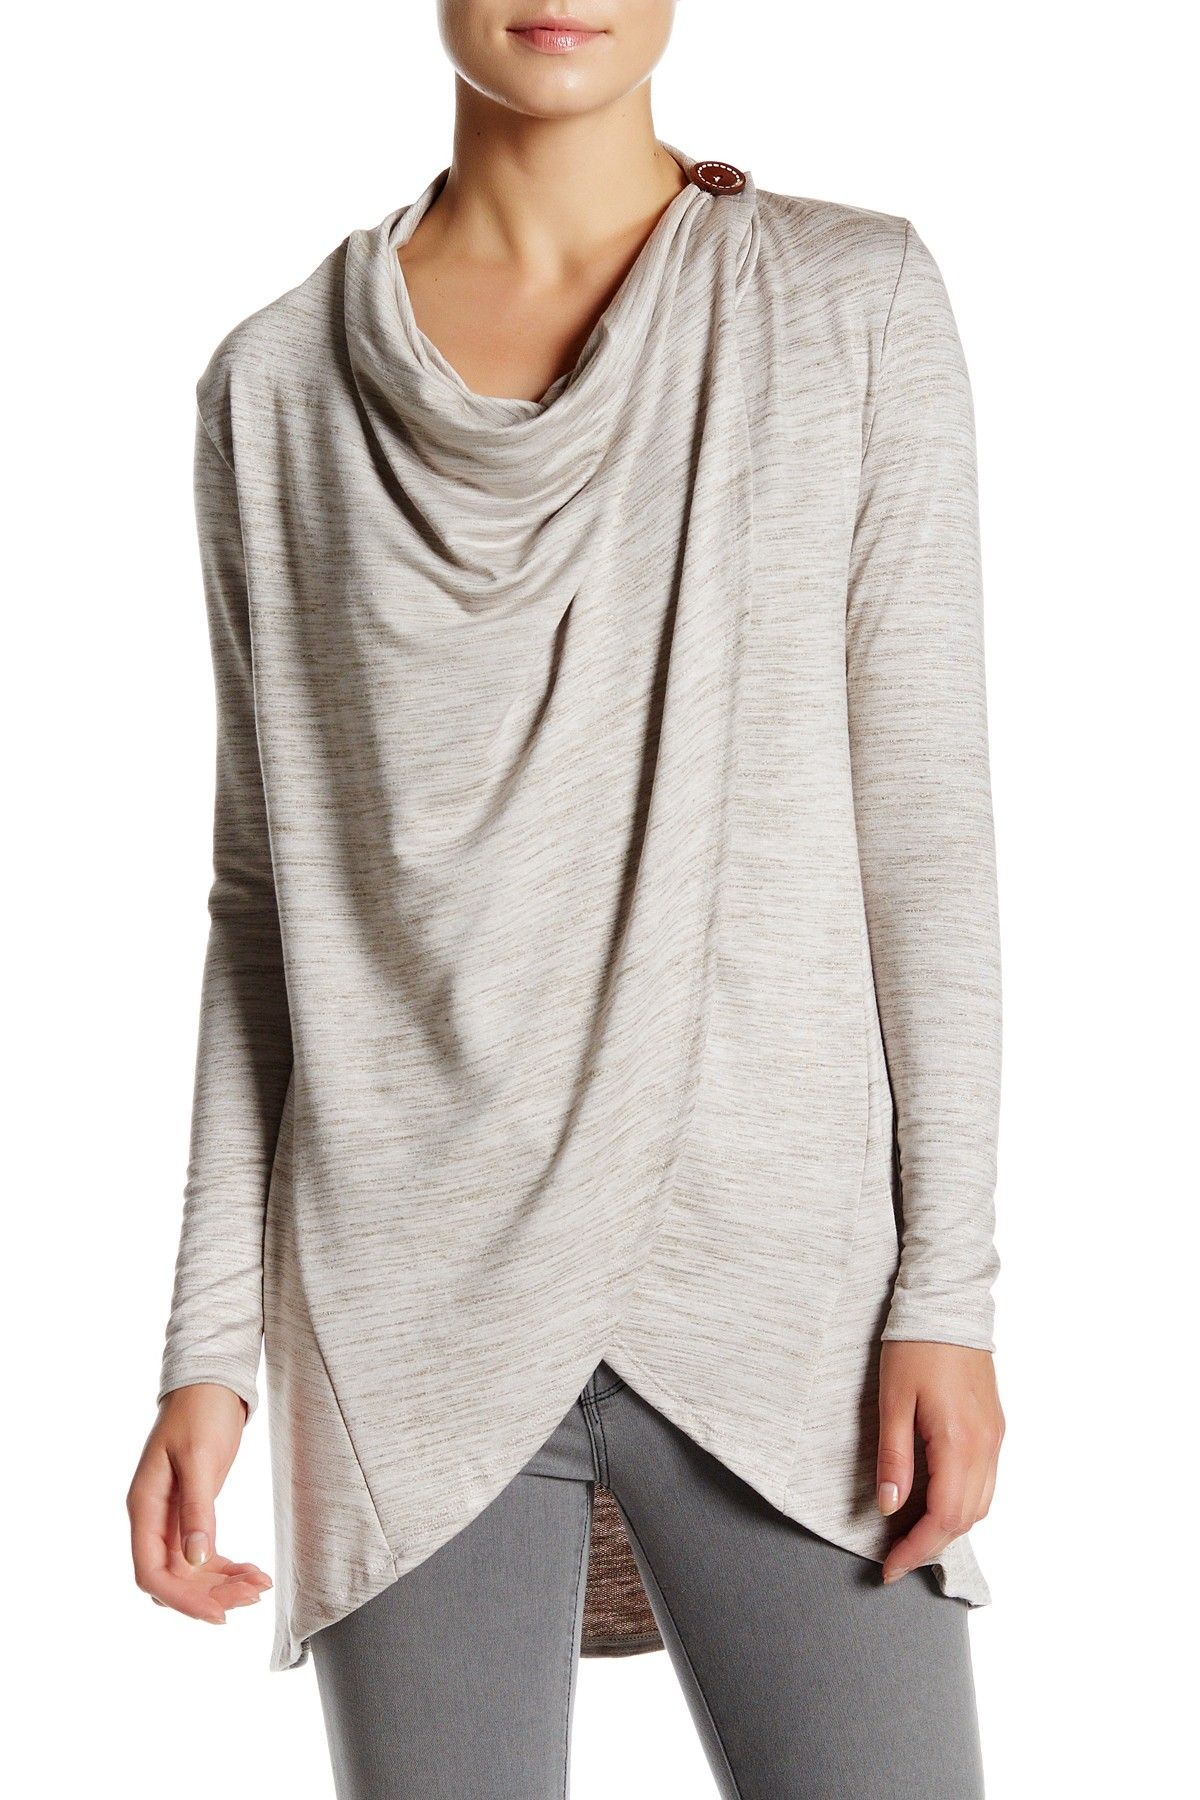 Bobeau | One-Button Wrap Cardigan | Wrap cardigan, Nordstrom and Wraps